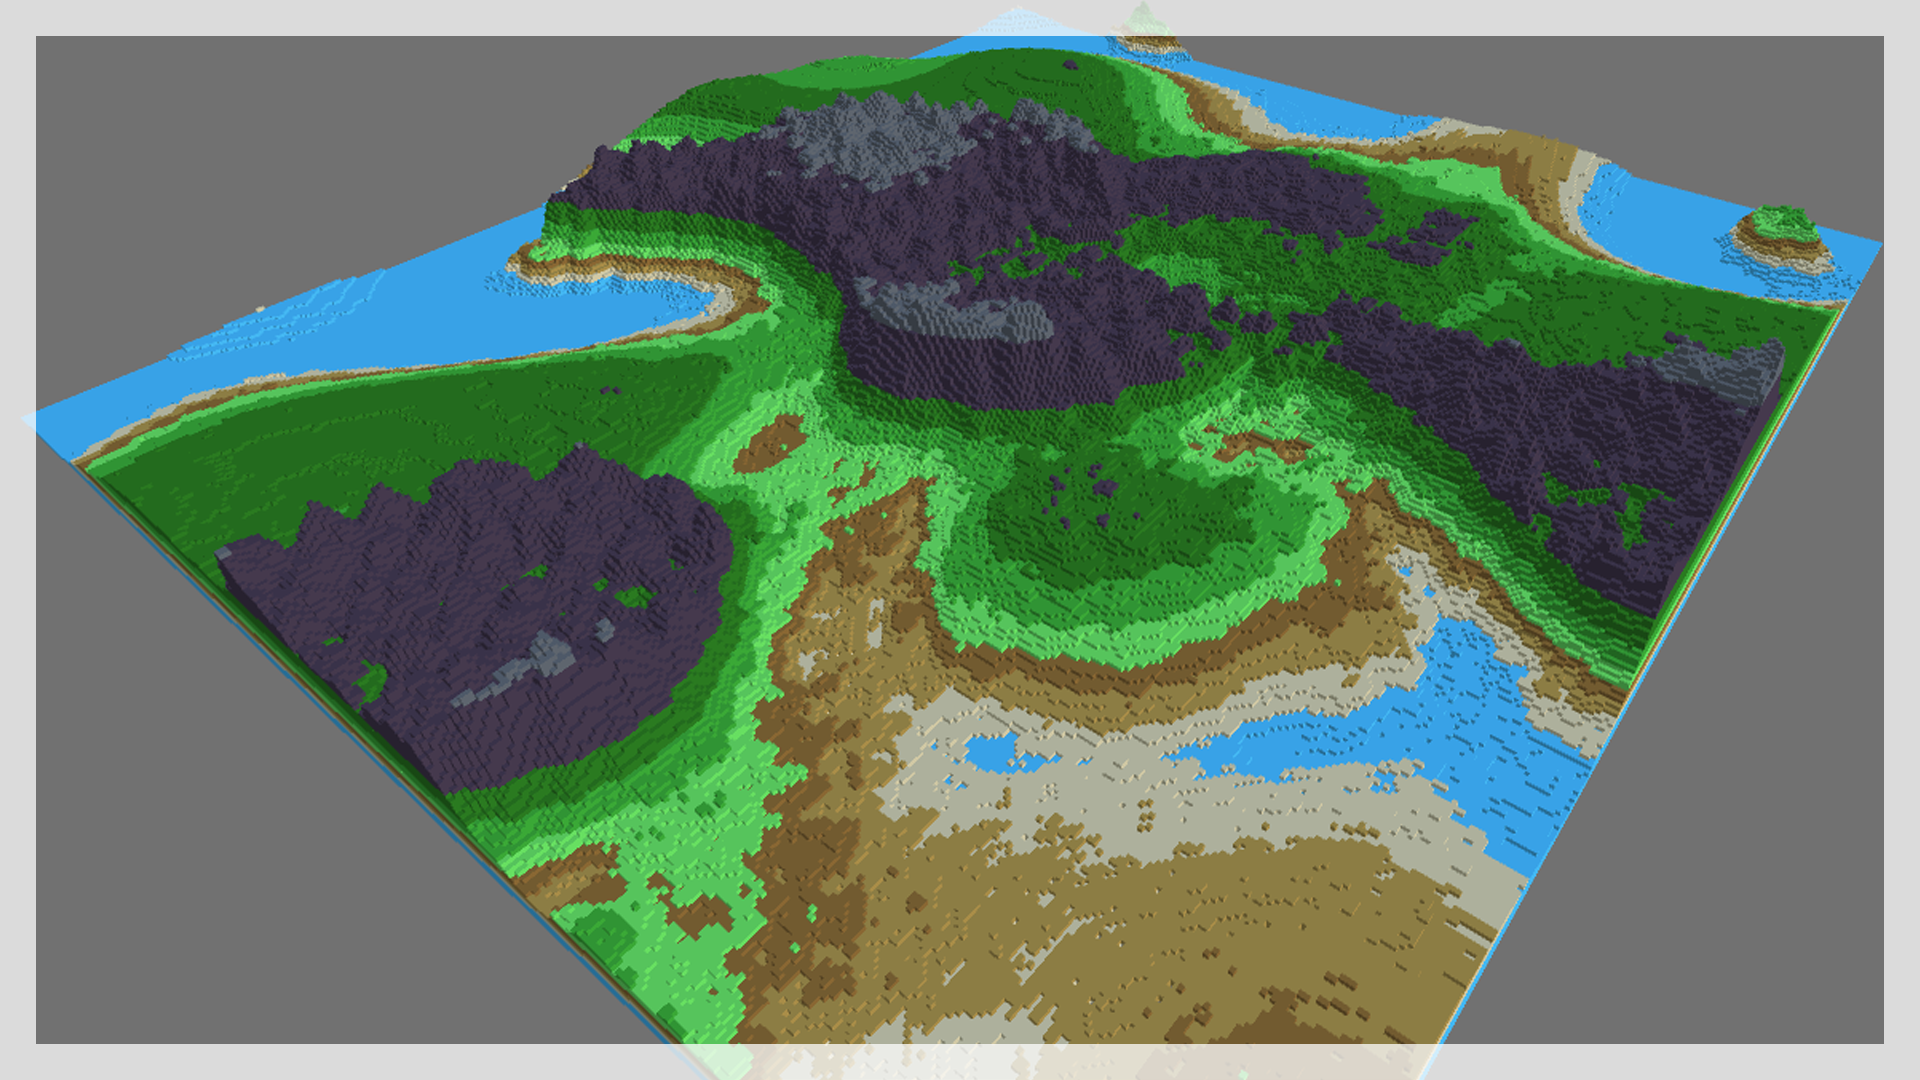 Layered Perlin Noise : v1 2 0 - Unity : Layered Perlin Noise